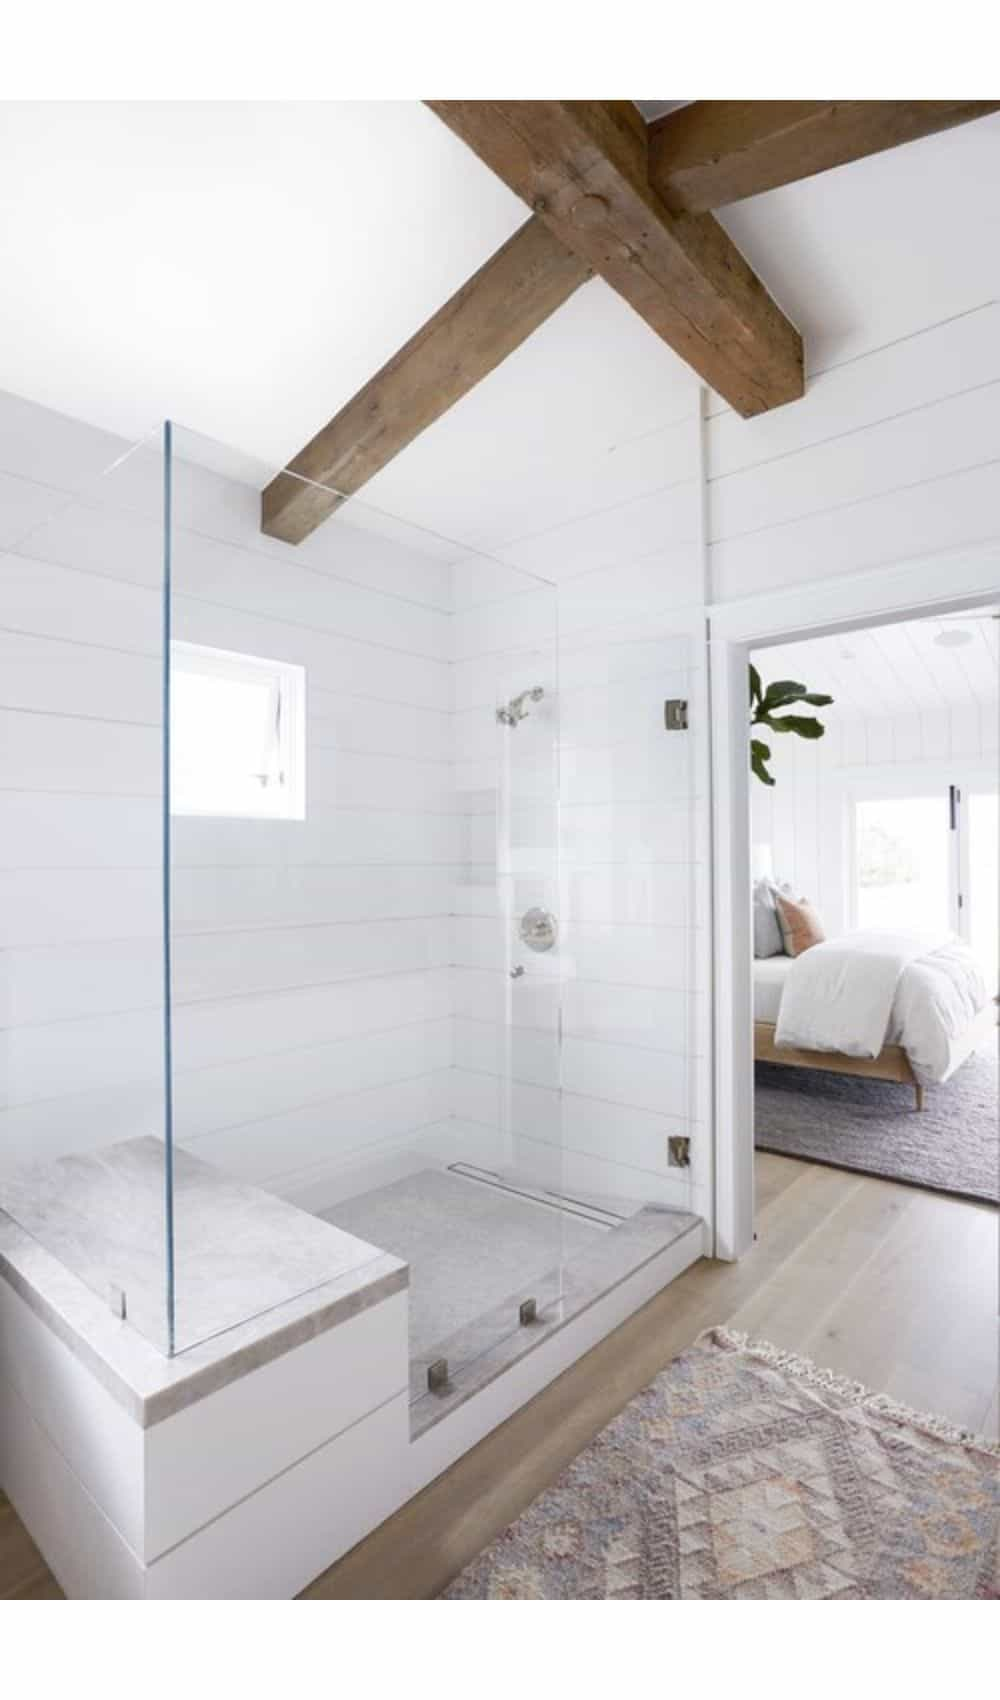 Large glass shower in master bathroom - white shiplap walls, marble tile, and wood beams on the ceiling